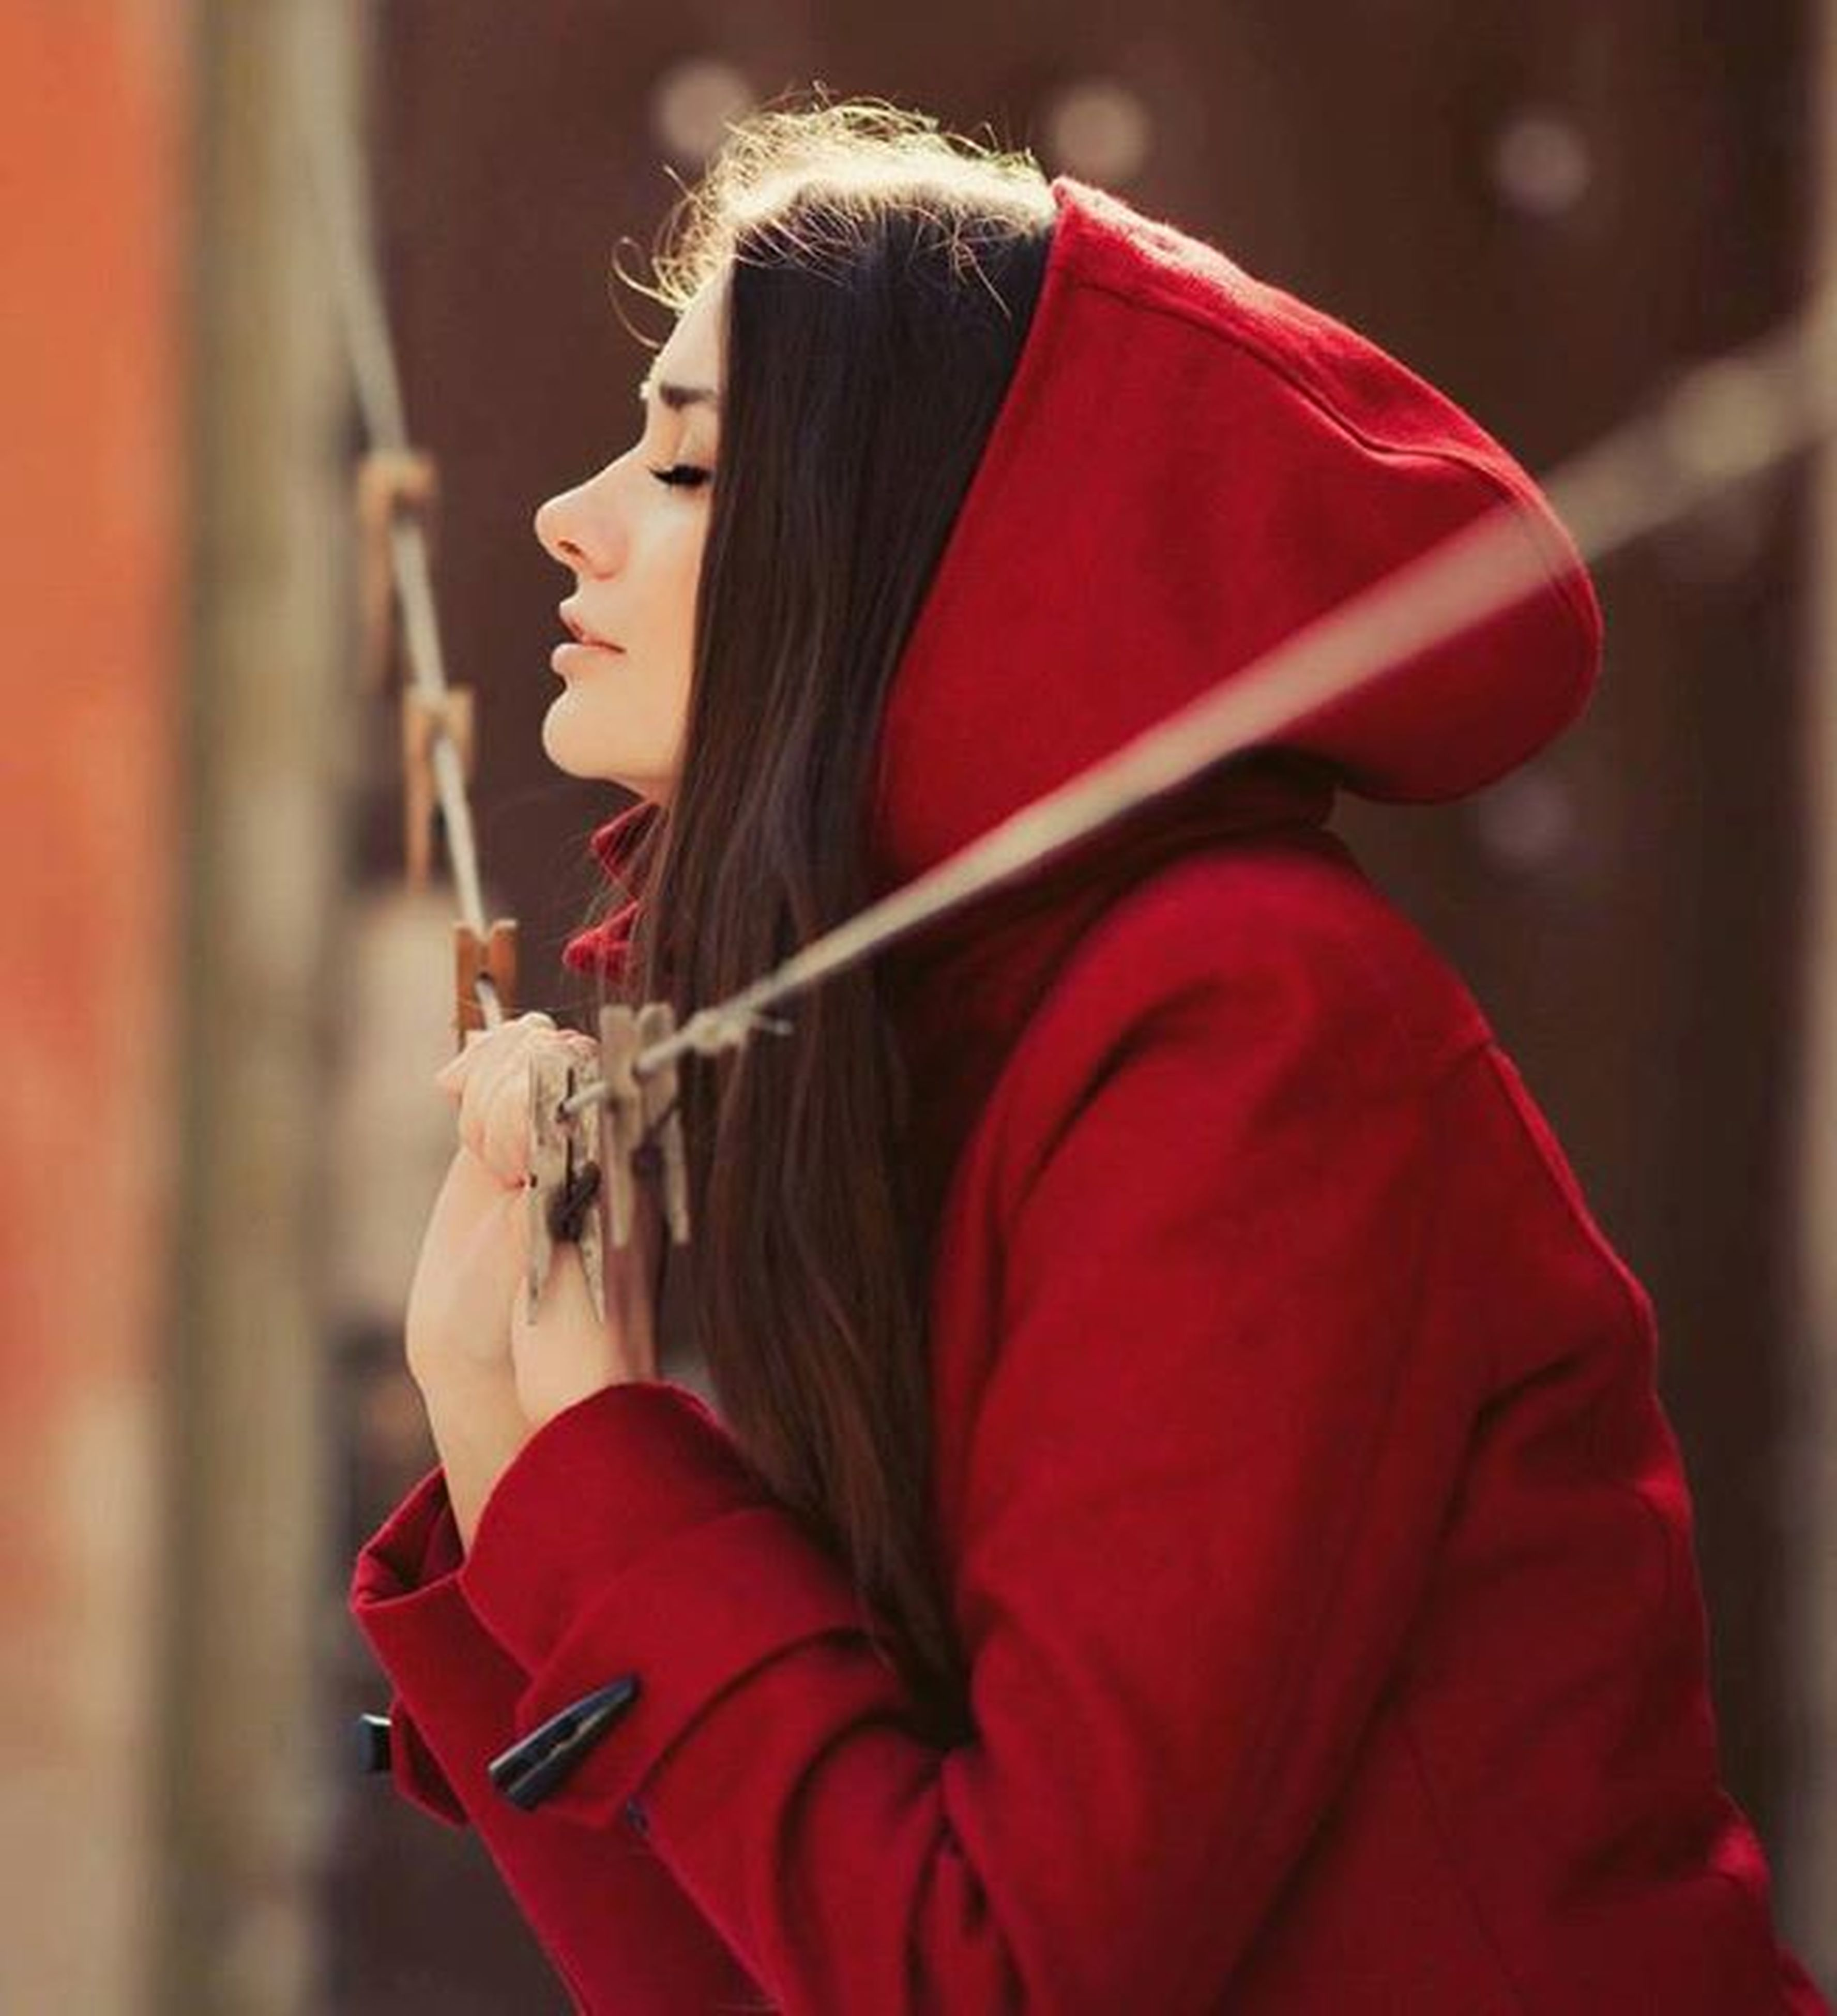 lifestyles, rear view, leisure activity, focus on foreground, red, person, casual clothing, long hair, holding, standing, waist up, headshot, three quarter length, men, obscured face, side view, young women, traditional clothing